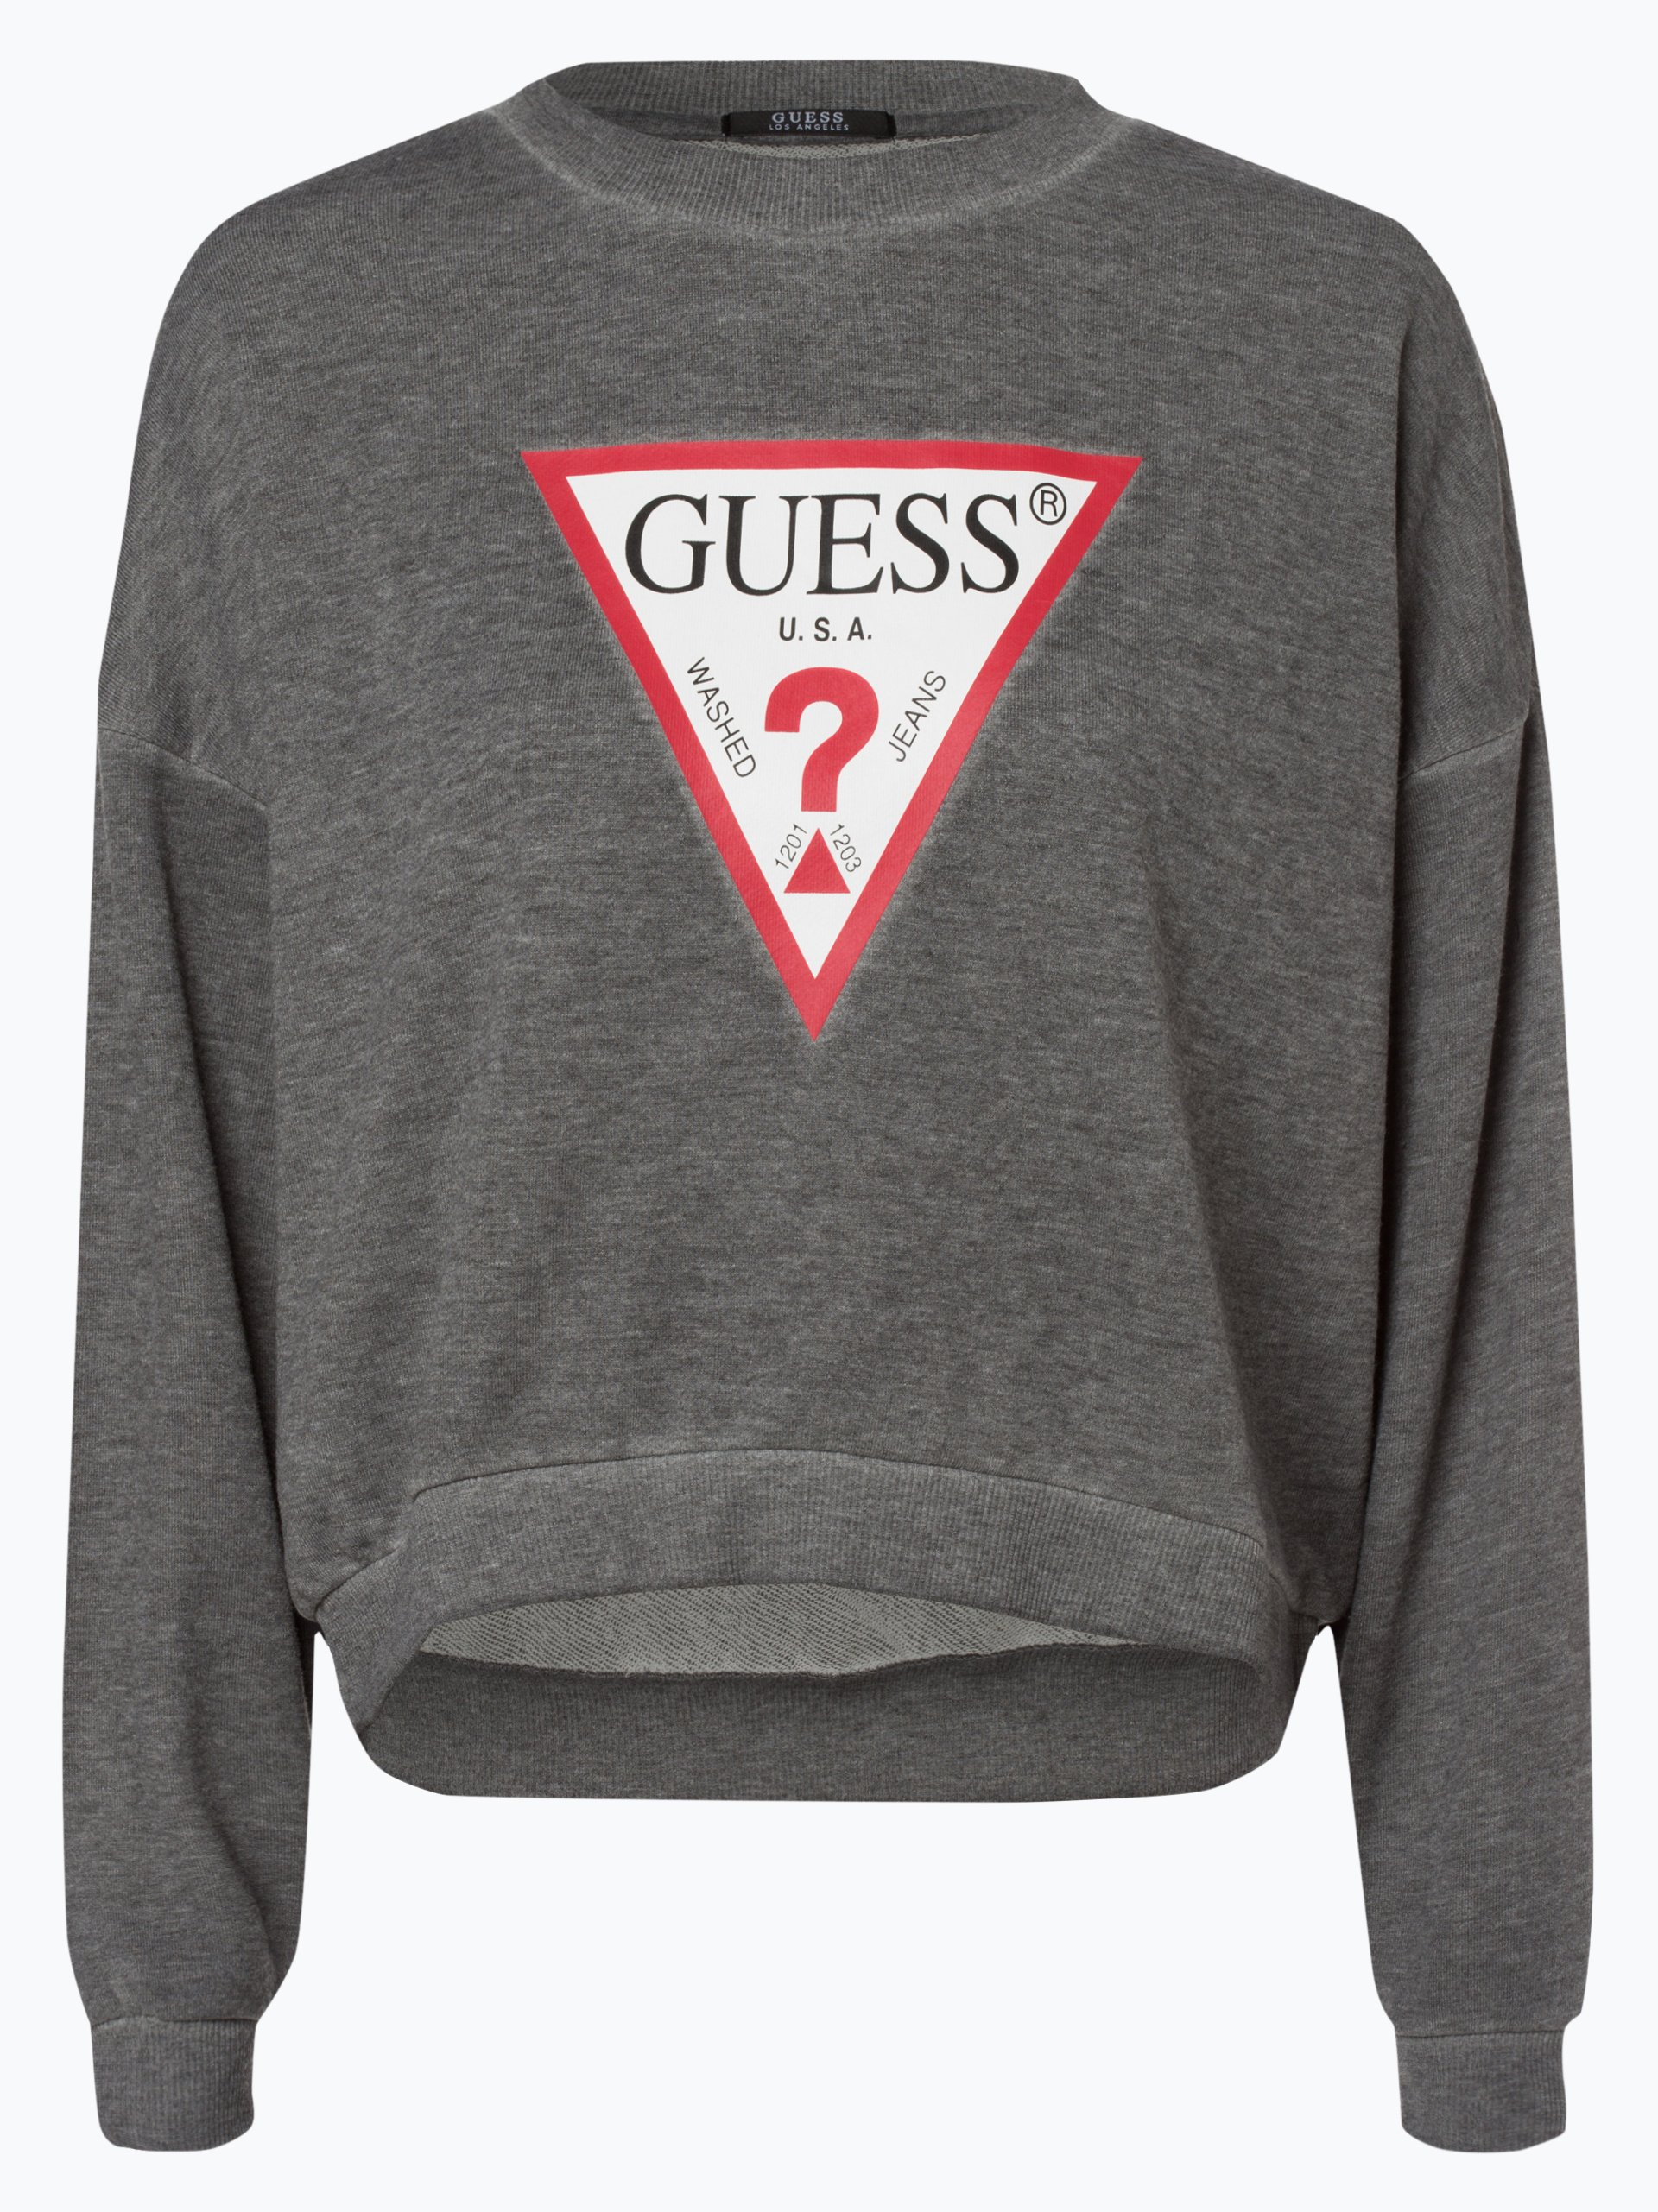 Guess Jeans Damen Sweatshirt